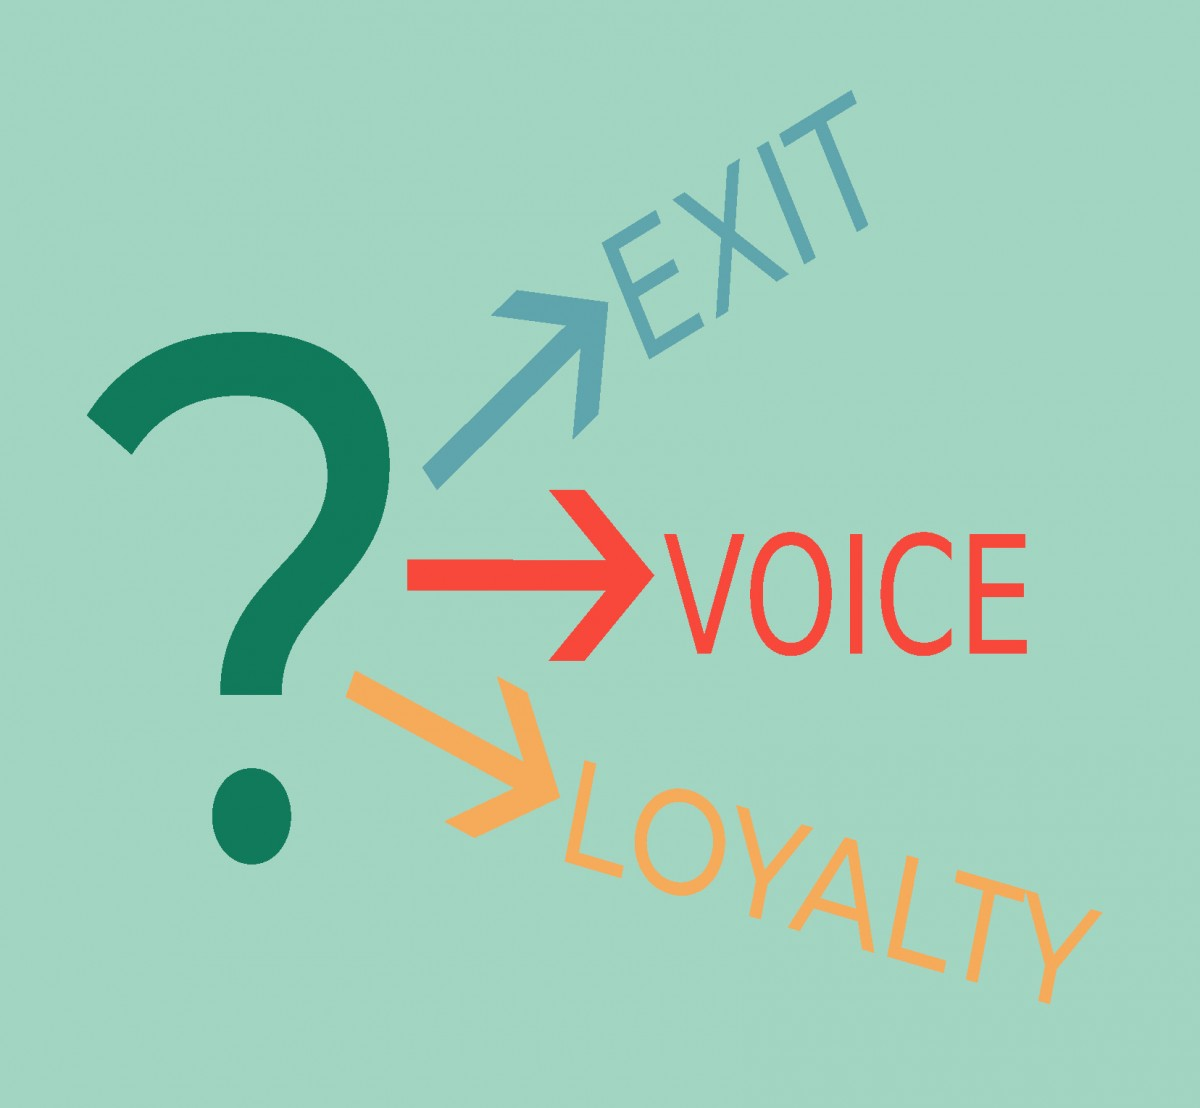 exit voice and loyalty game